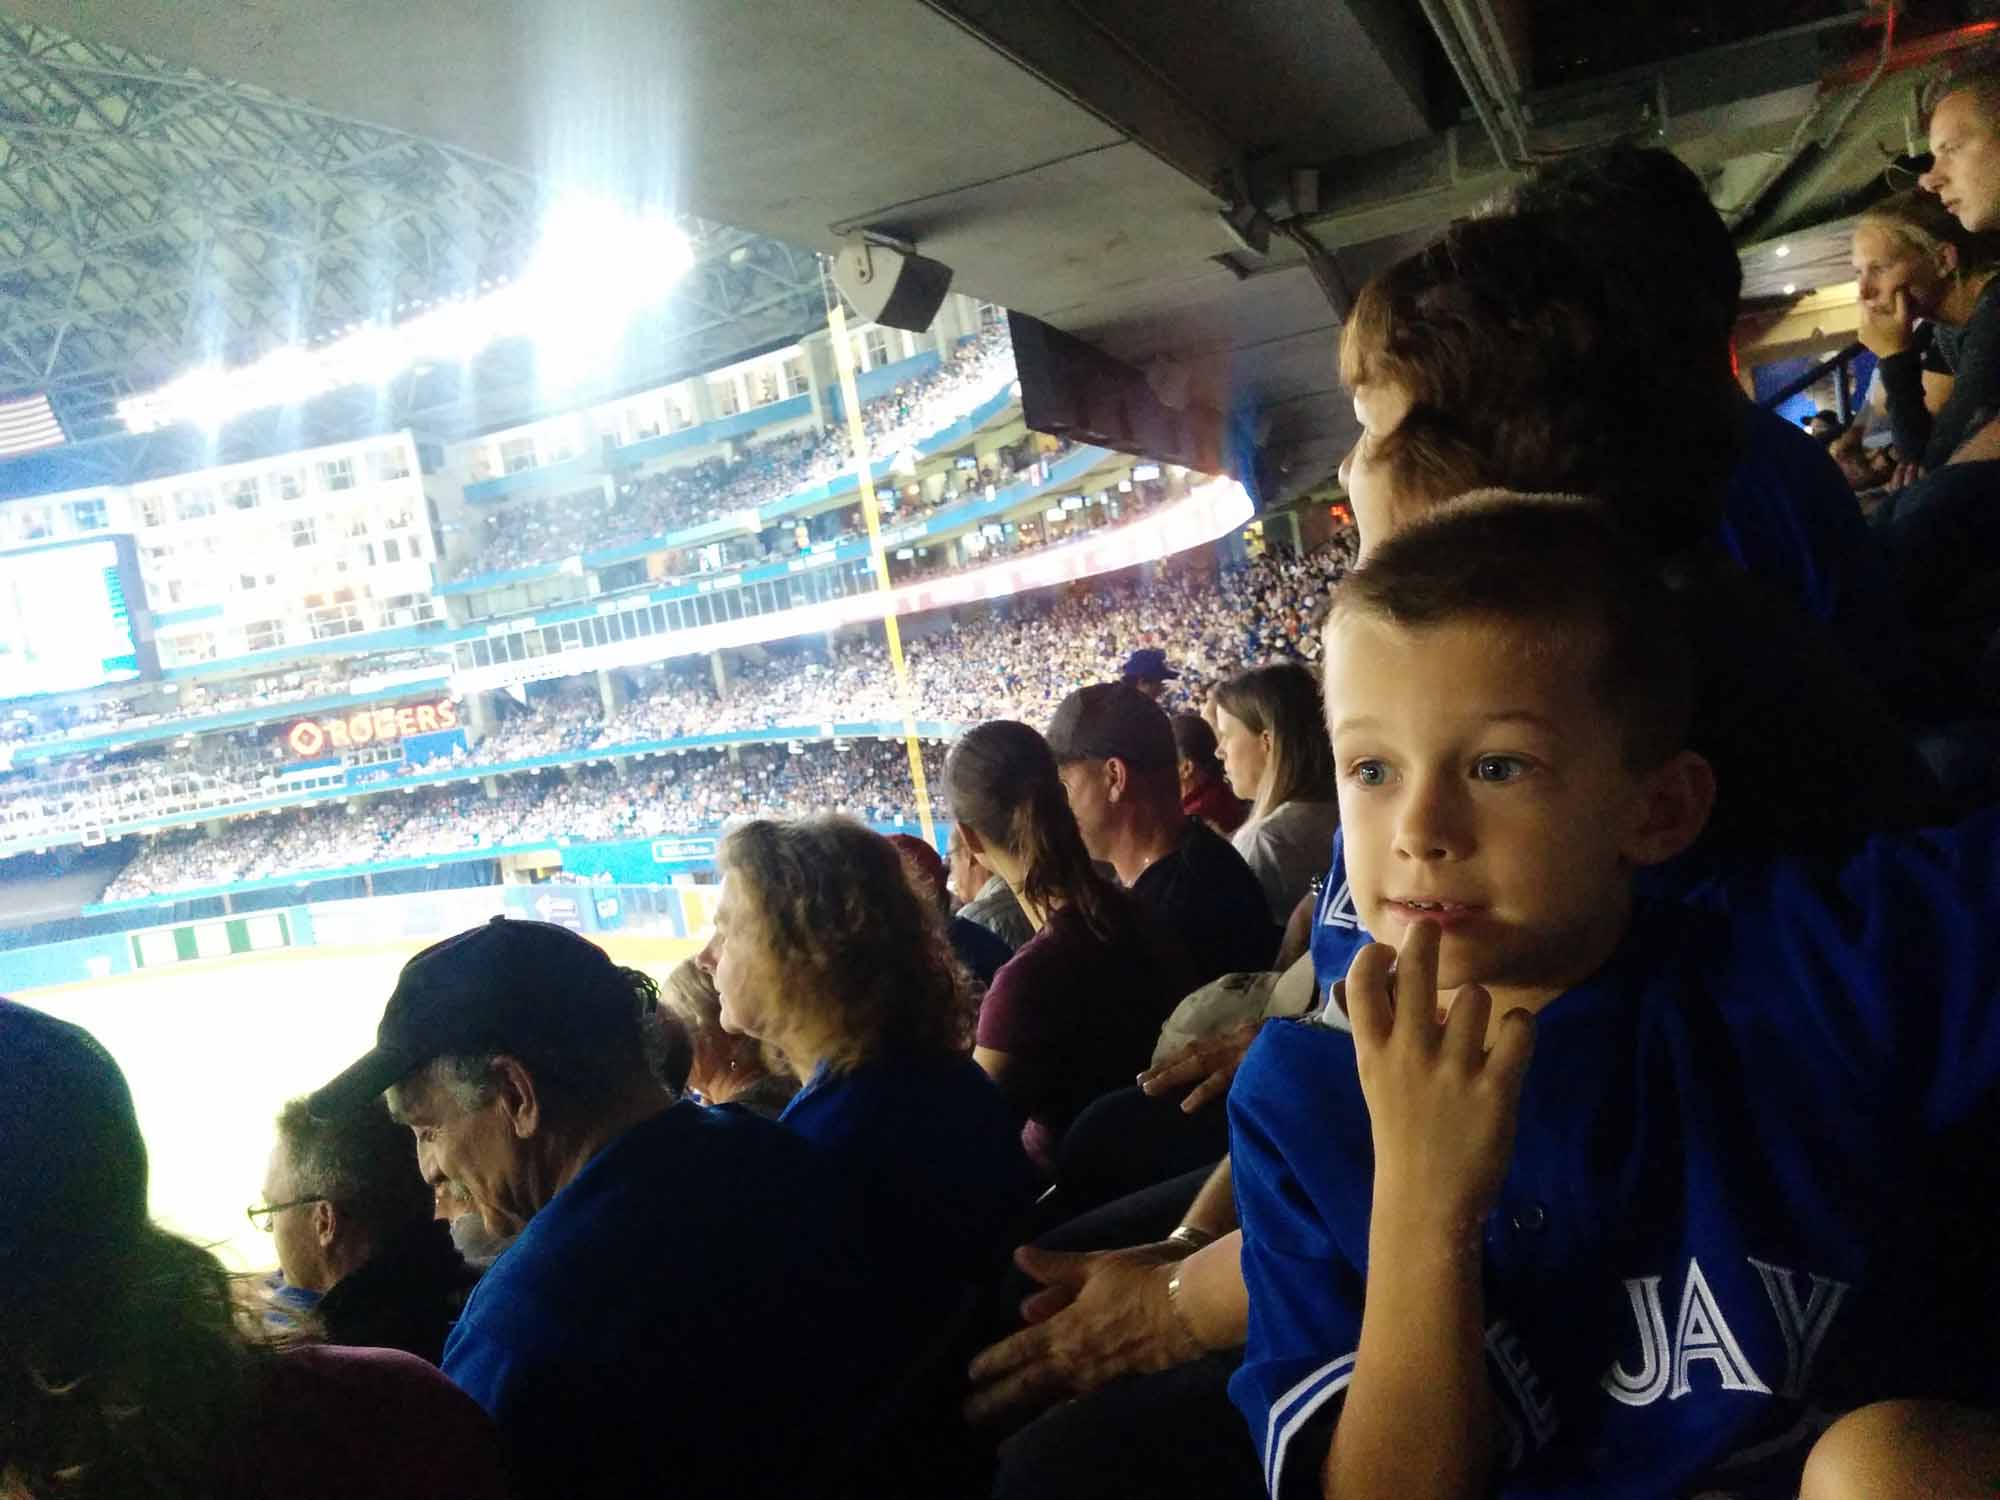 Blue Jay Game